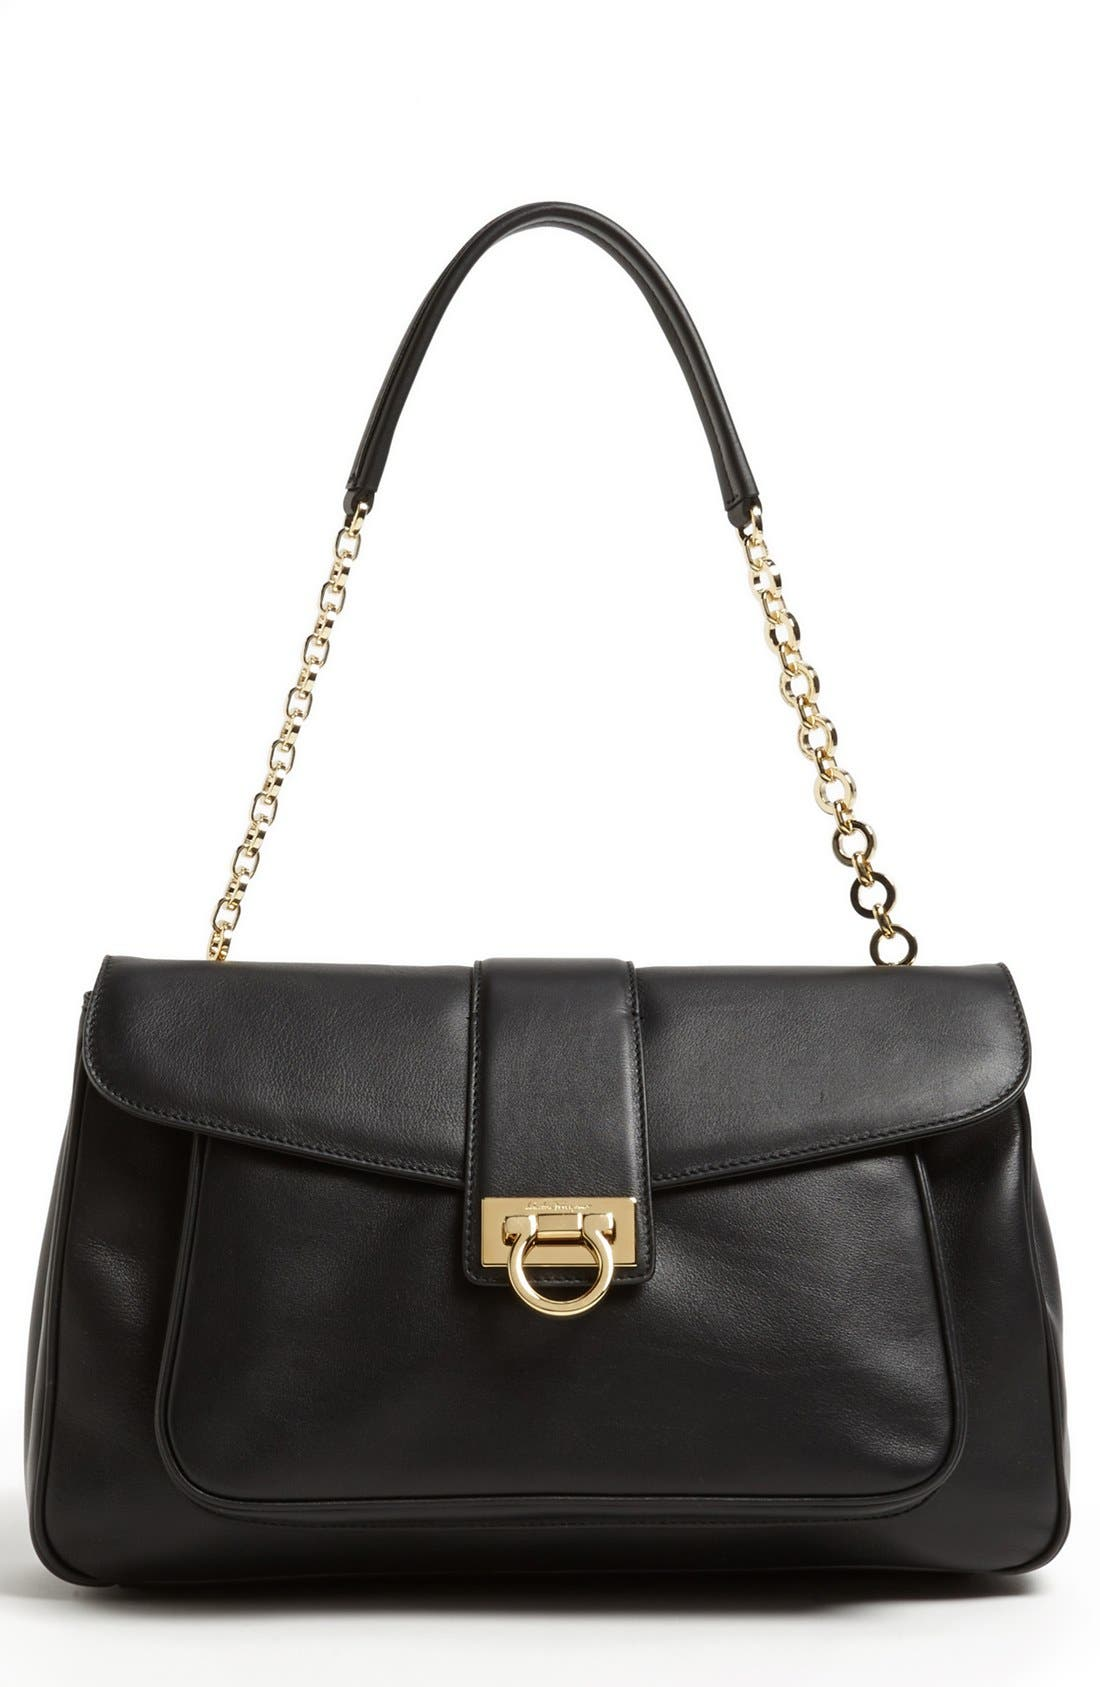 Main Image - Salvatore Ferragamo 'Paula' Leather Shoulder Bag